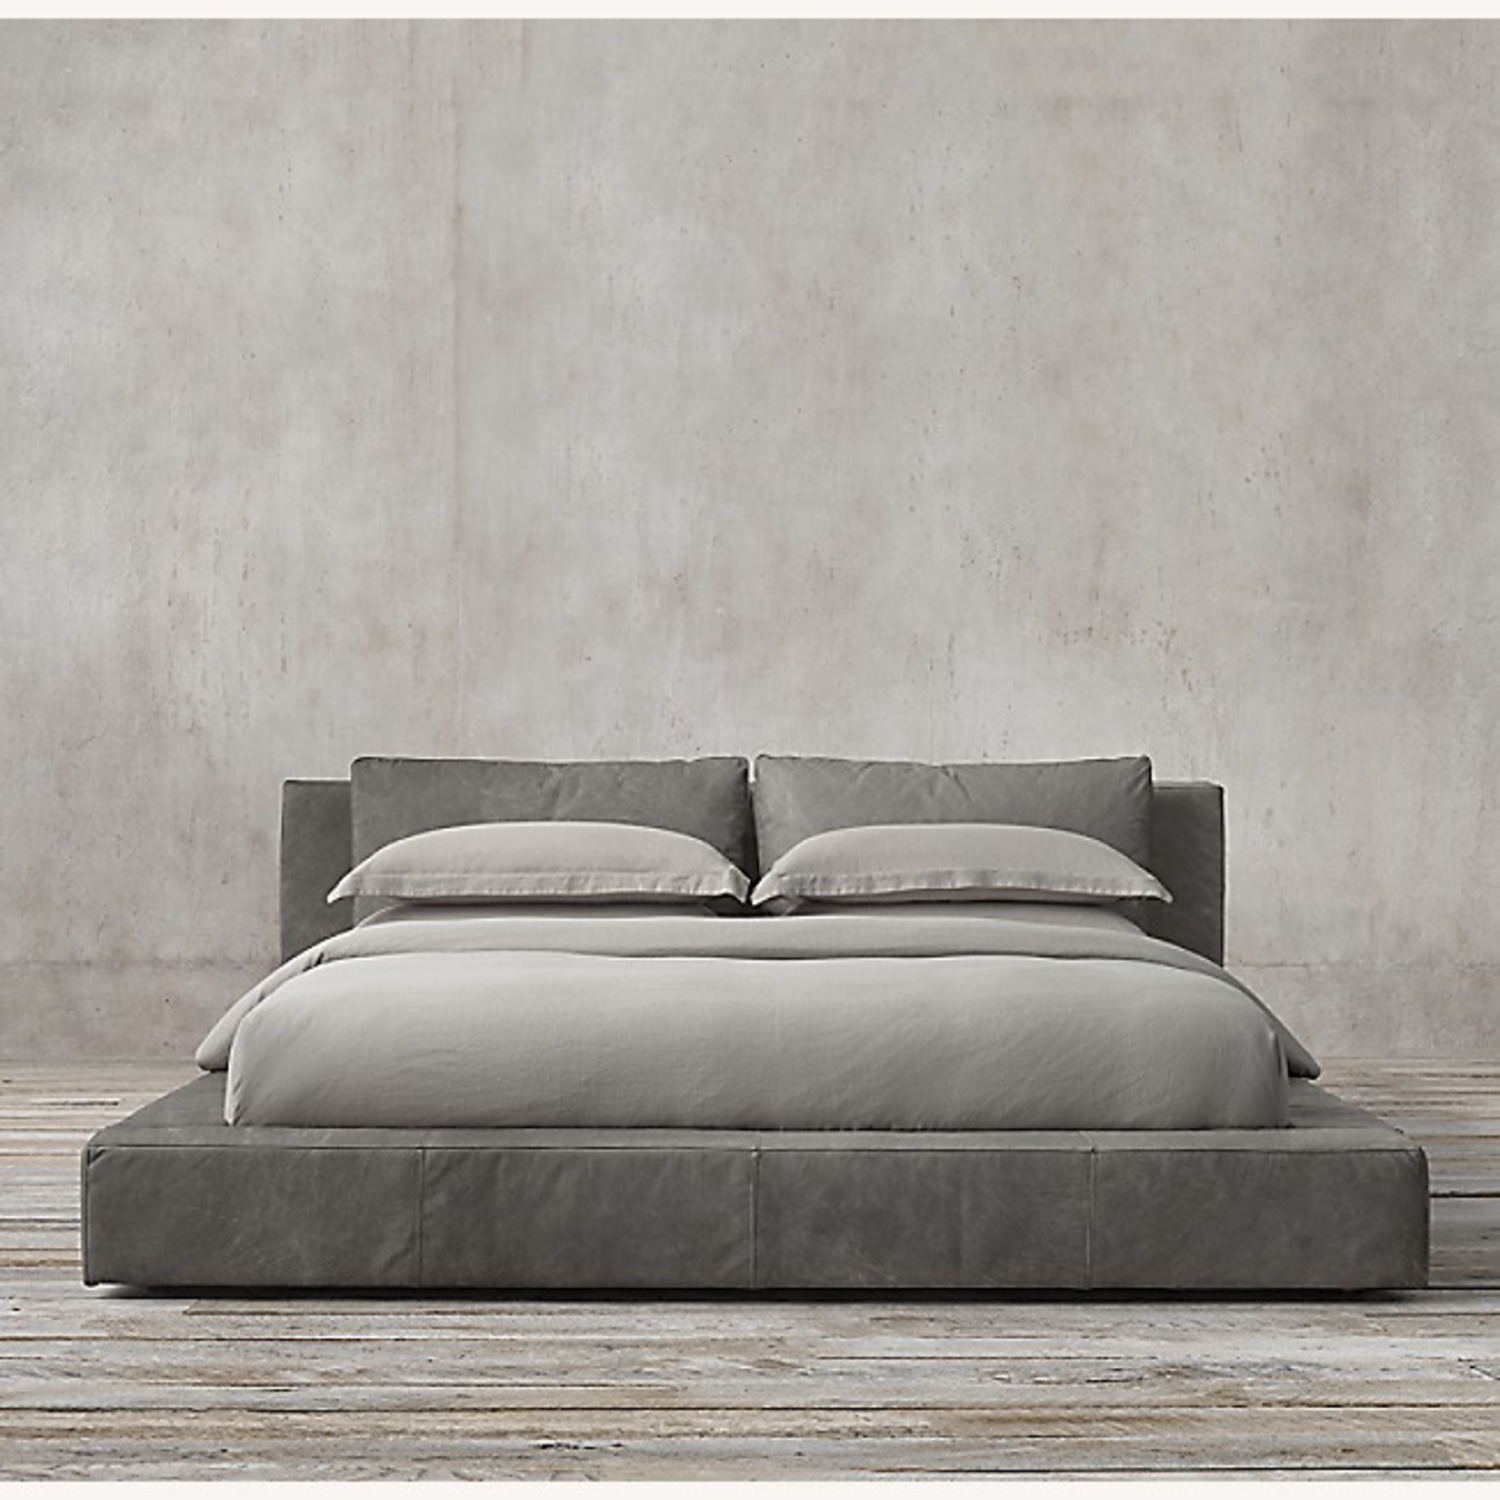 Restoration Hardware - Leather Platform Bed - image-9